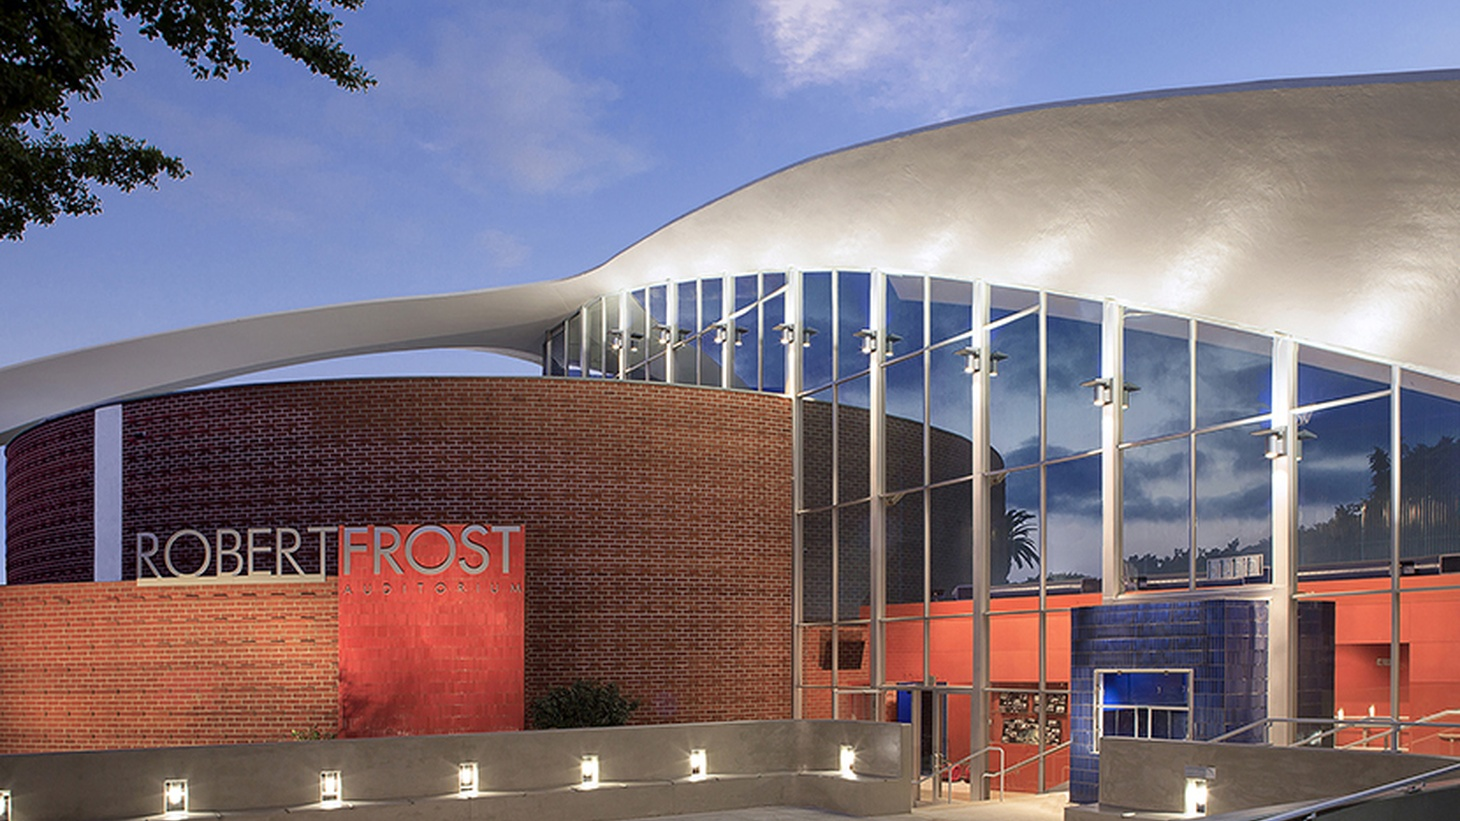 The Robert Frost Memorial Auditorium, with a renovation overseen by H+F Architects.